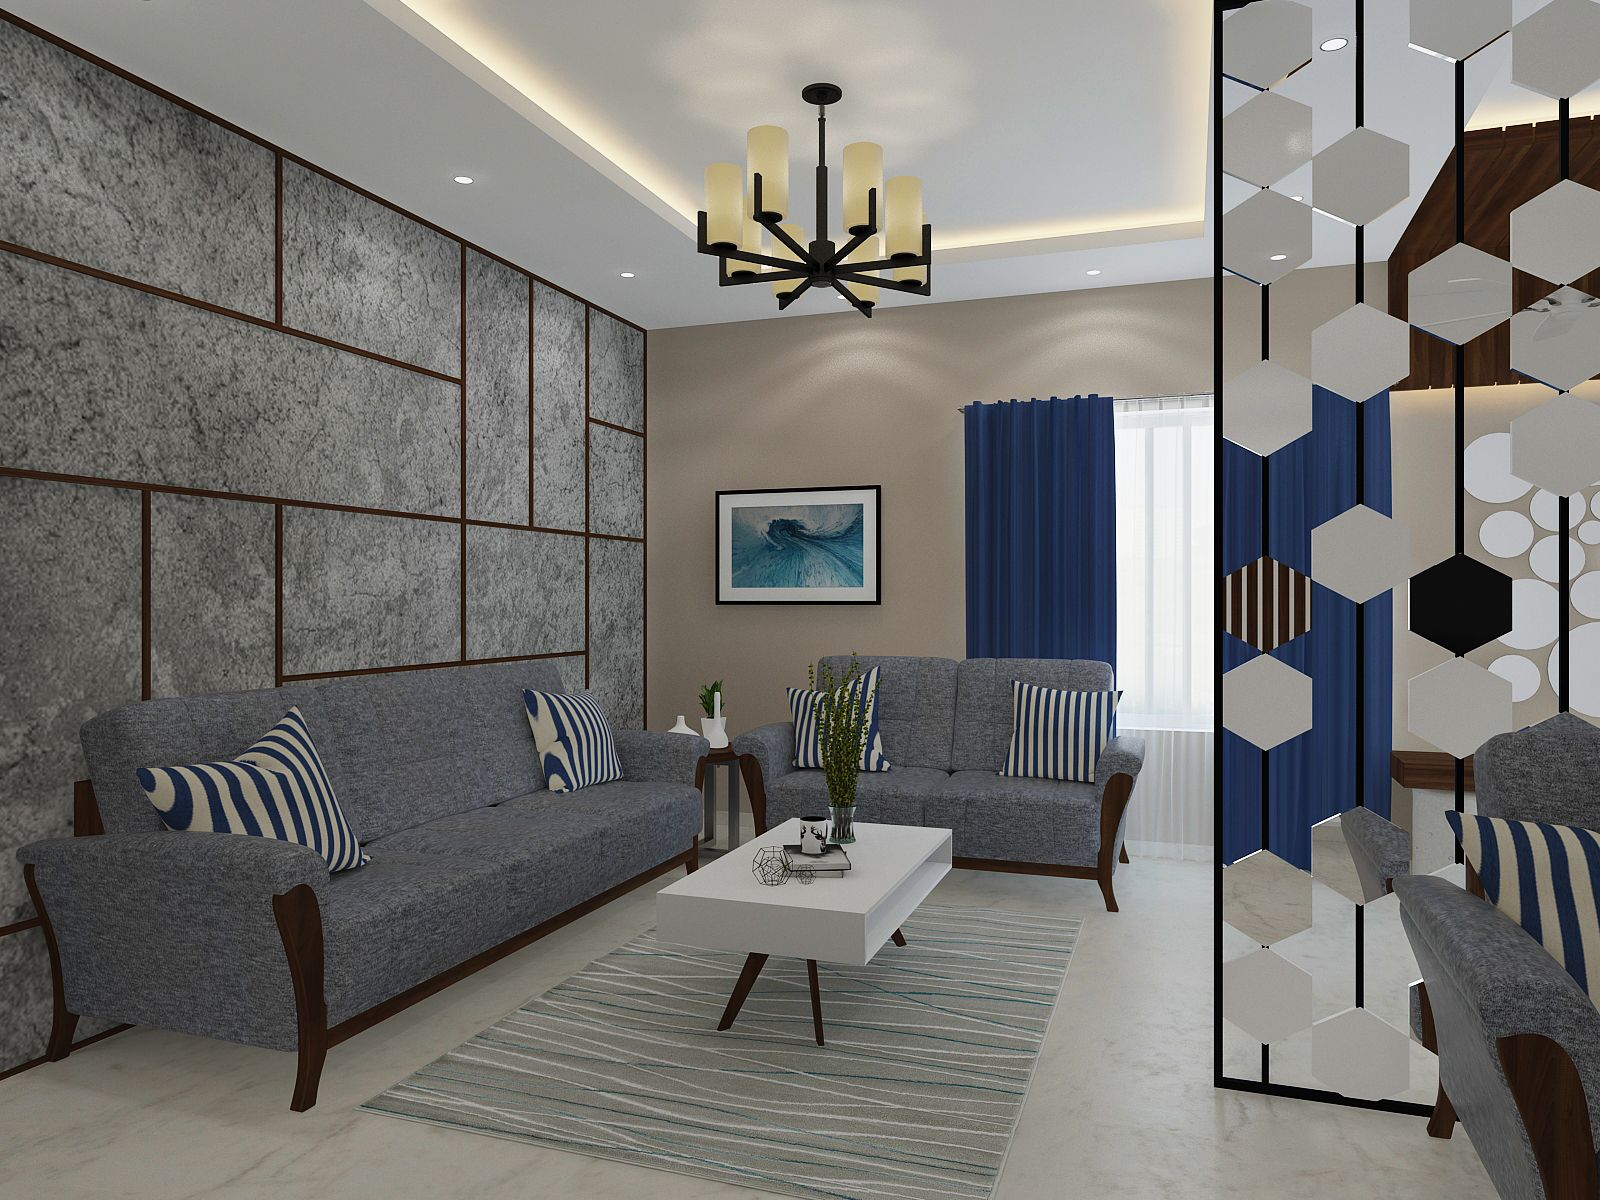 Effective Ways To Get A Luxurious And High End Look Bestinteriordesigner Interiordesignfirmbangalore Designarc Home Interior Design Best Interior